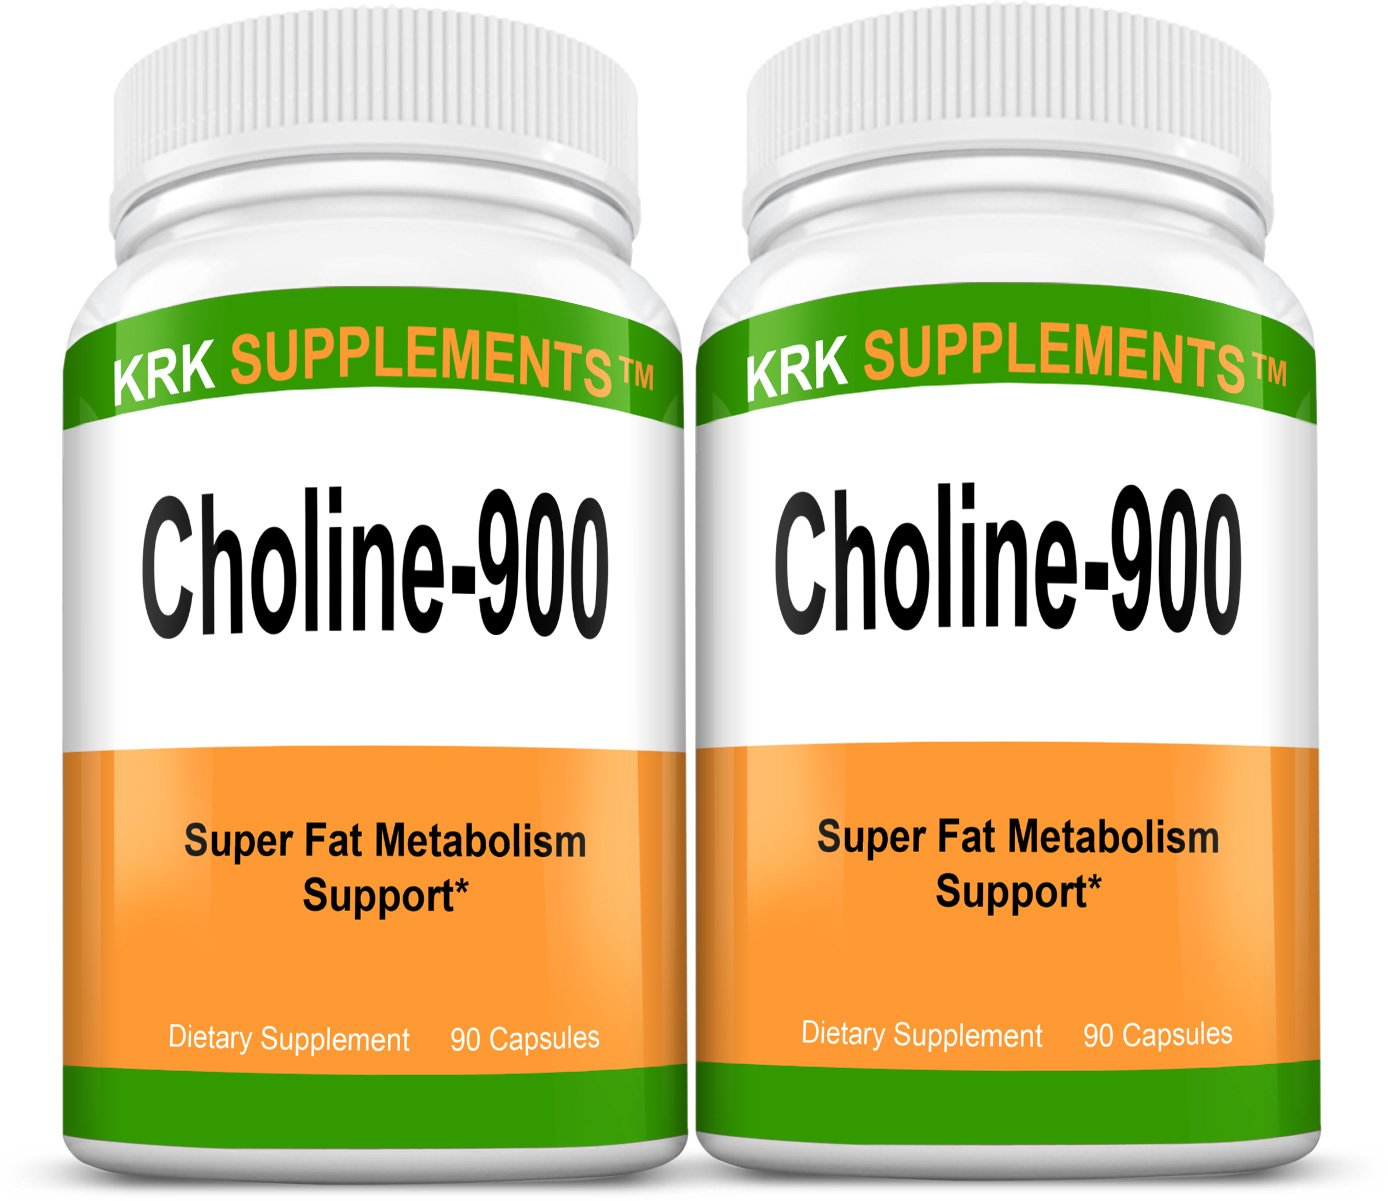 2 Bottles Choline Bitartrate 900mg Per Serving 180 Total Capsules KRK Supplements